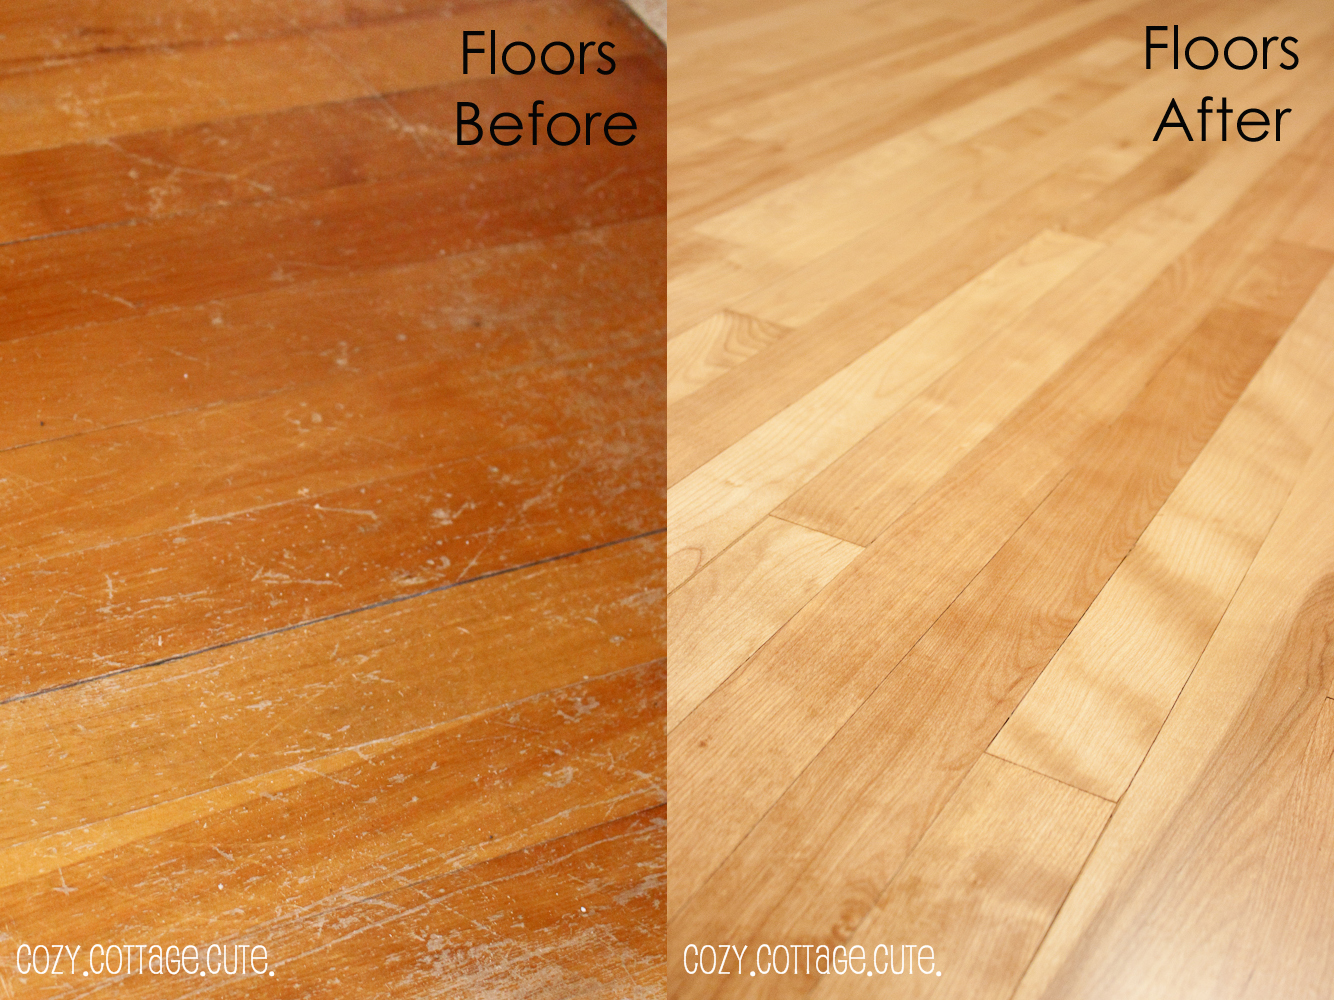 Refinish hardwood floors march 2013 for Wood floor refinishing